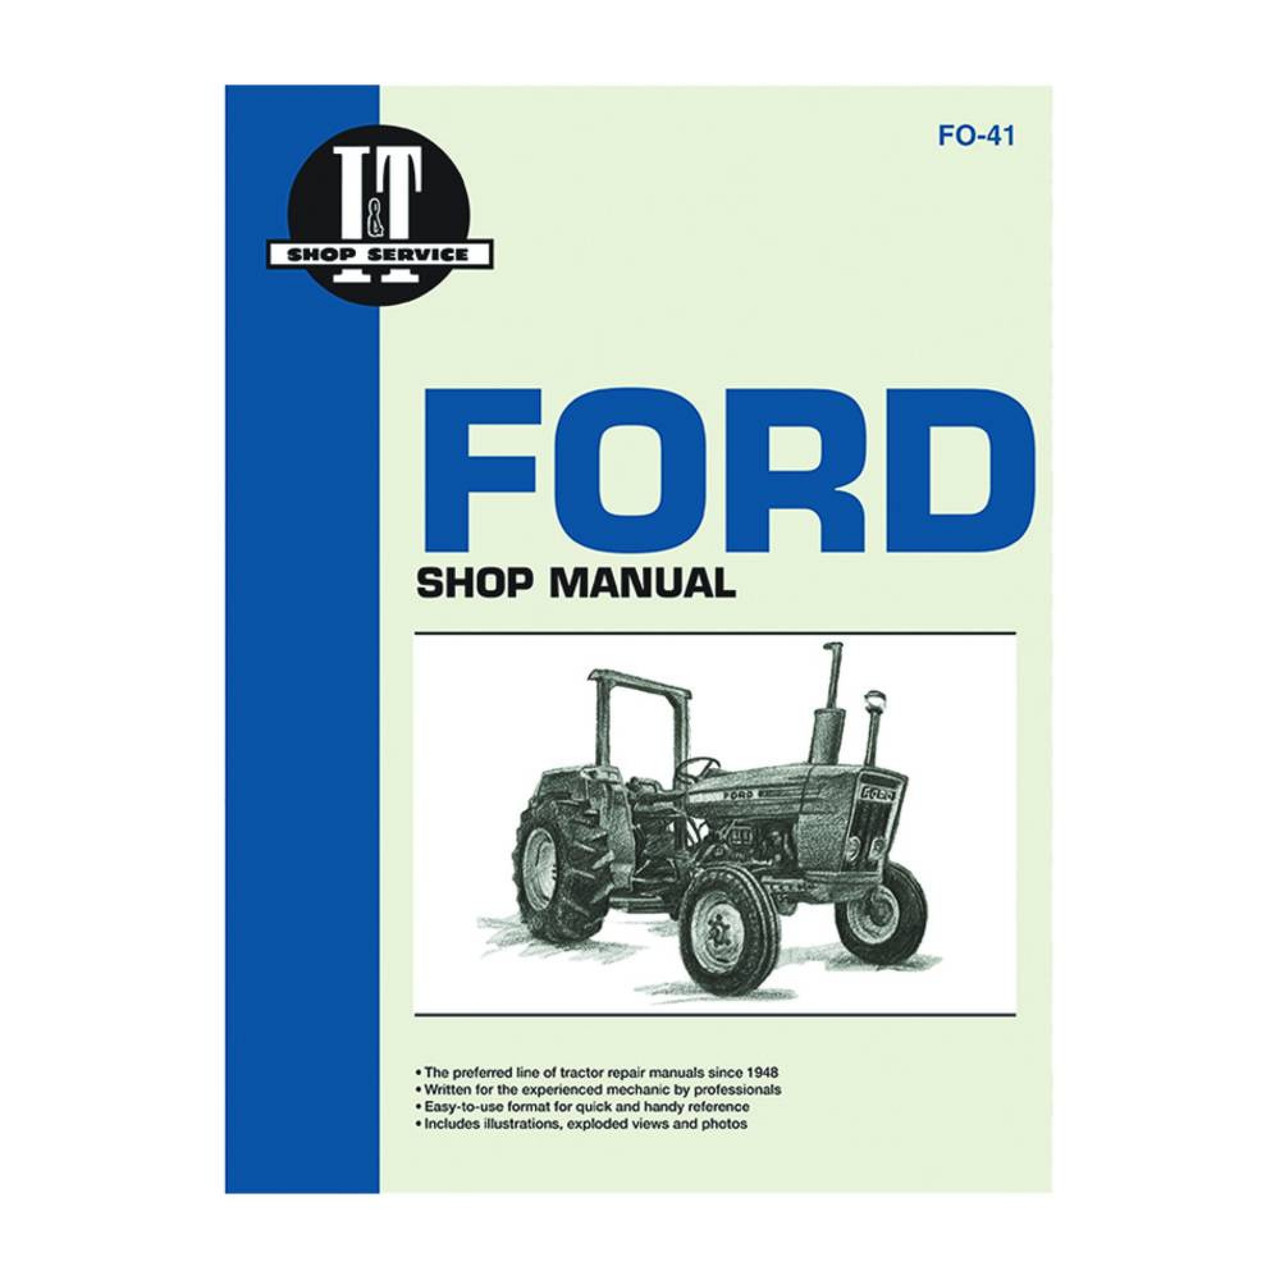 hight resolution of service manual ford new holland tractor fo 41 2310 2600 2610 3600 ford 4600 tractor parts diagram